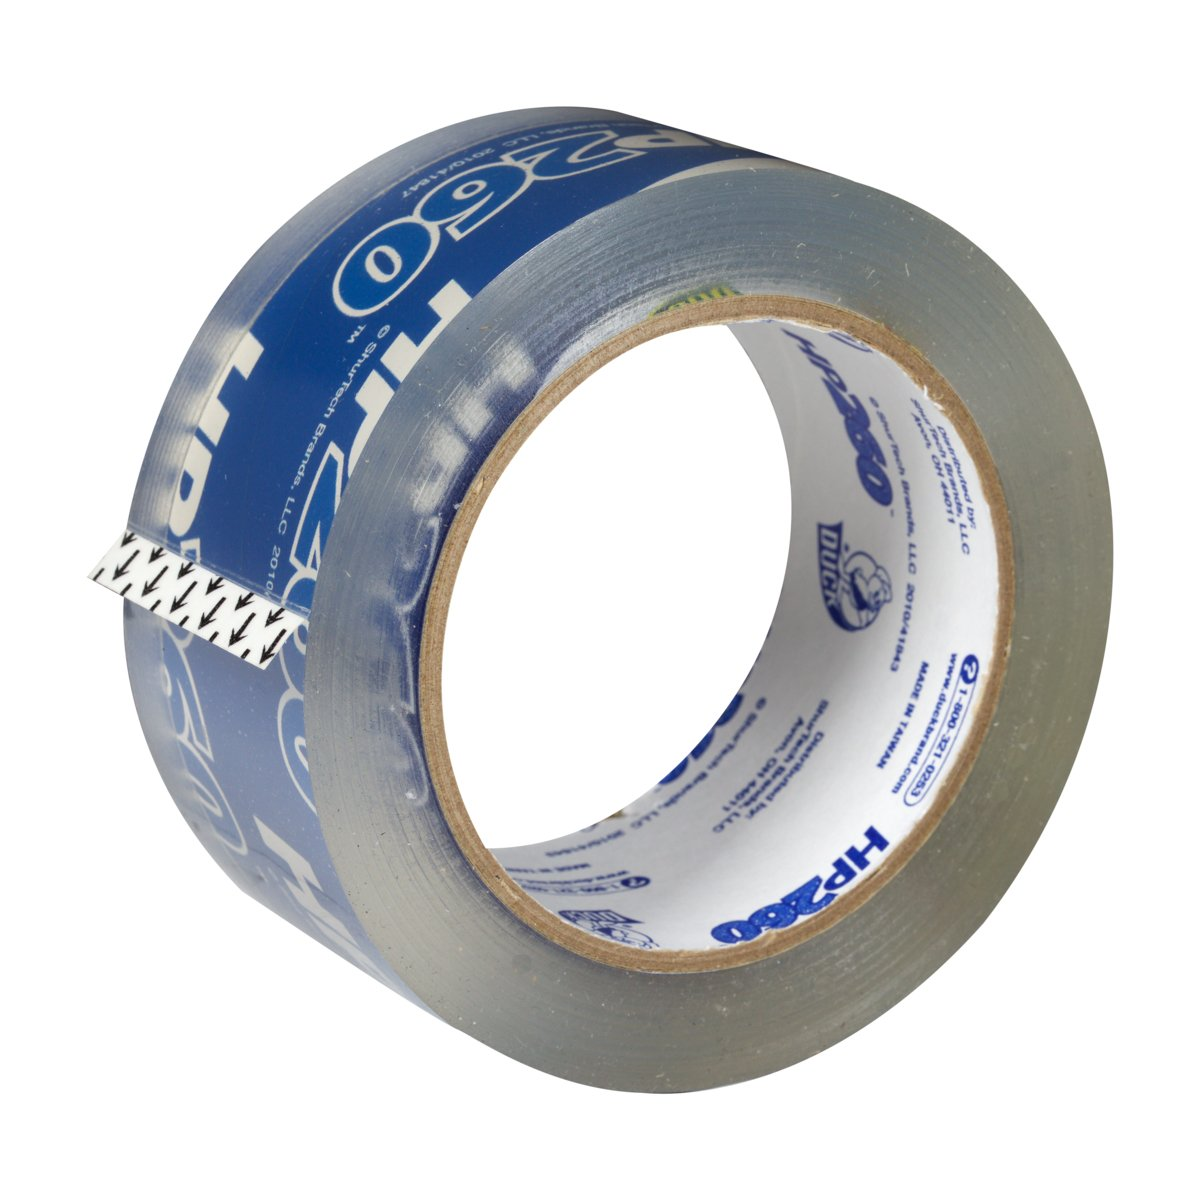 Duck HP260 Packing Tape Refill, 8 Rolls, 1.88 Inch x 60 Yard, Clear (1067839) by Duck (Image #2)